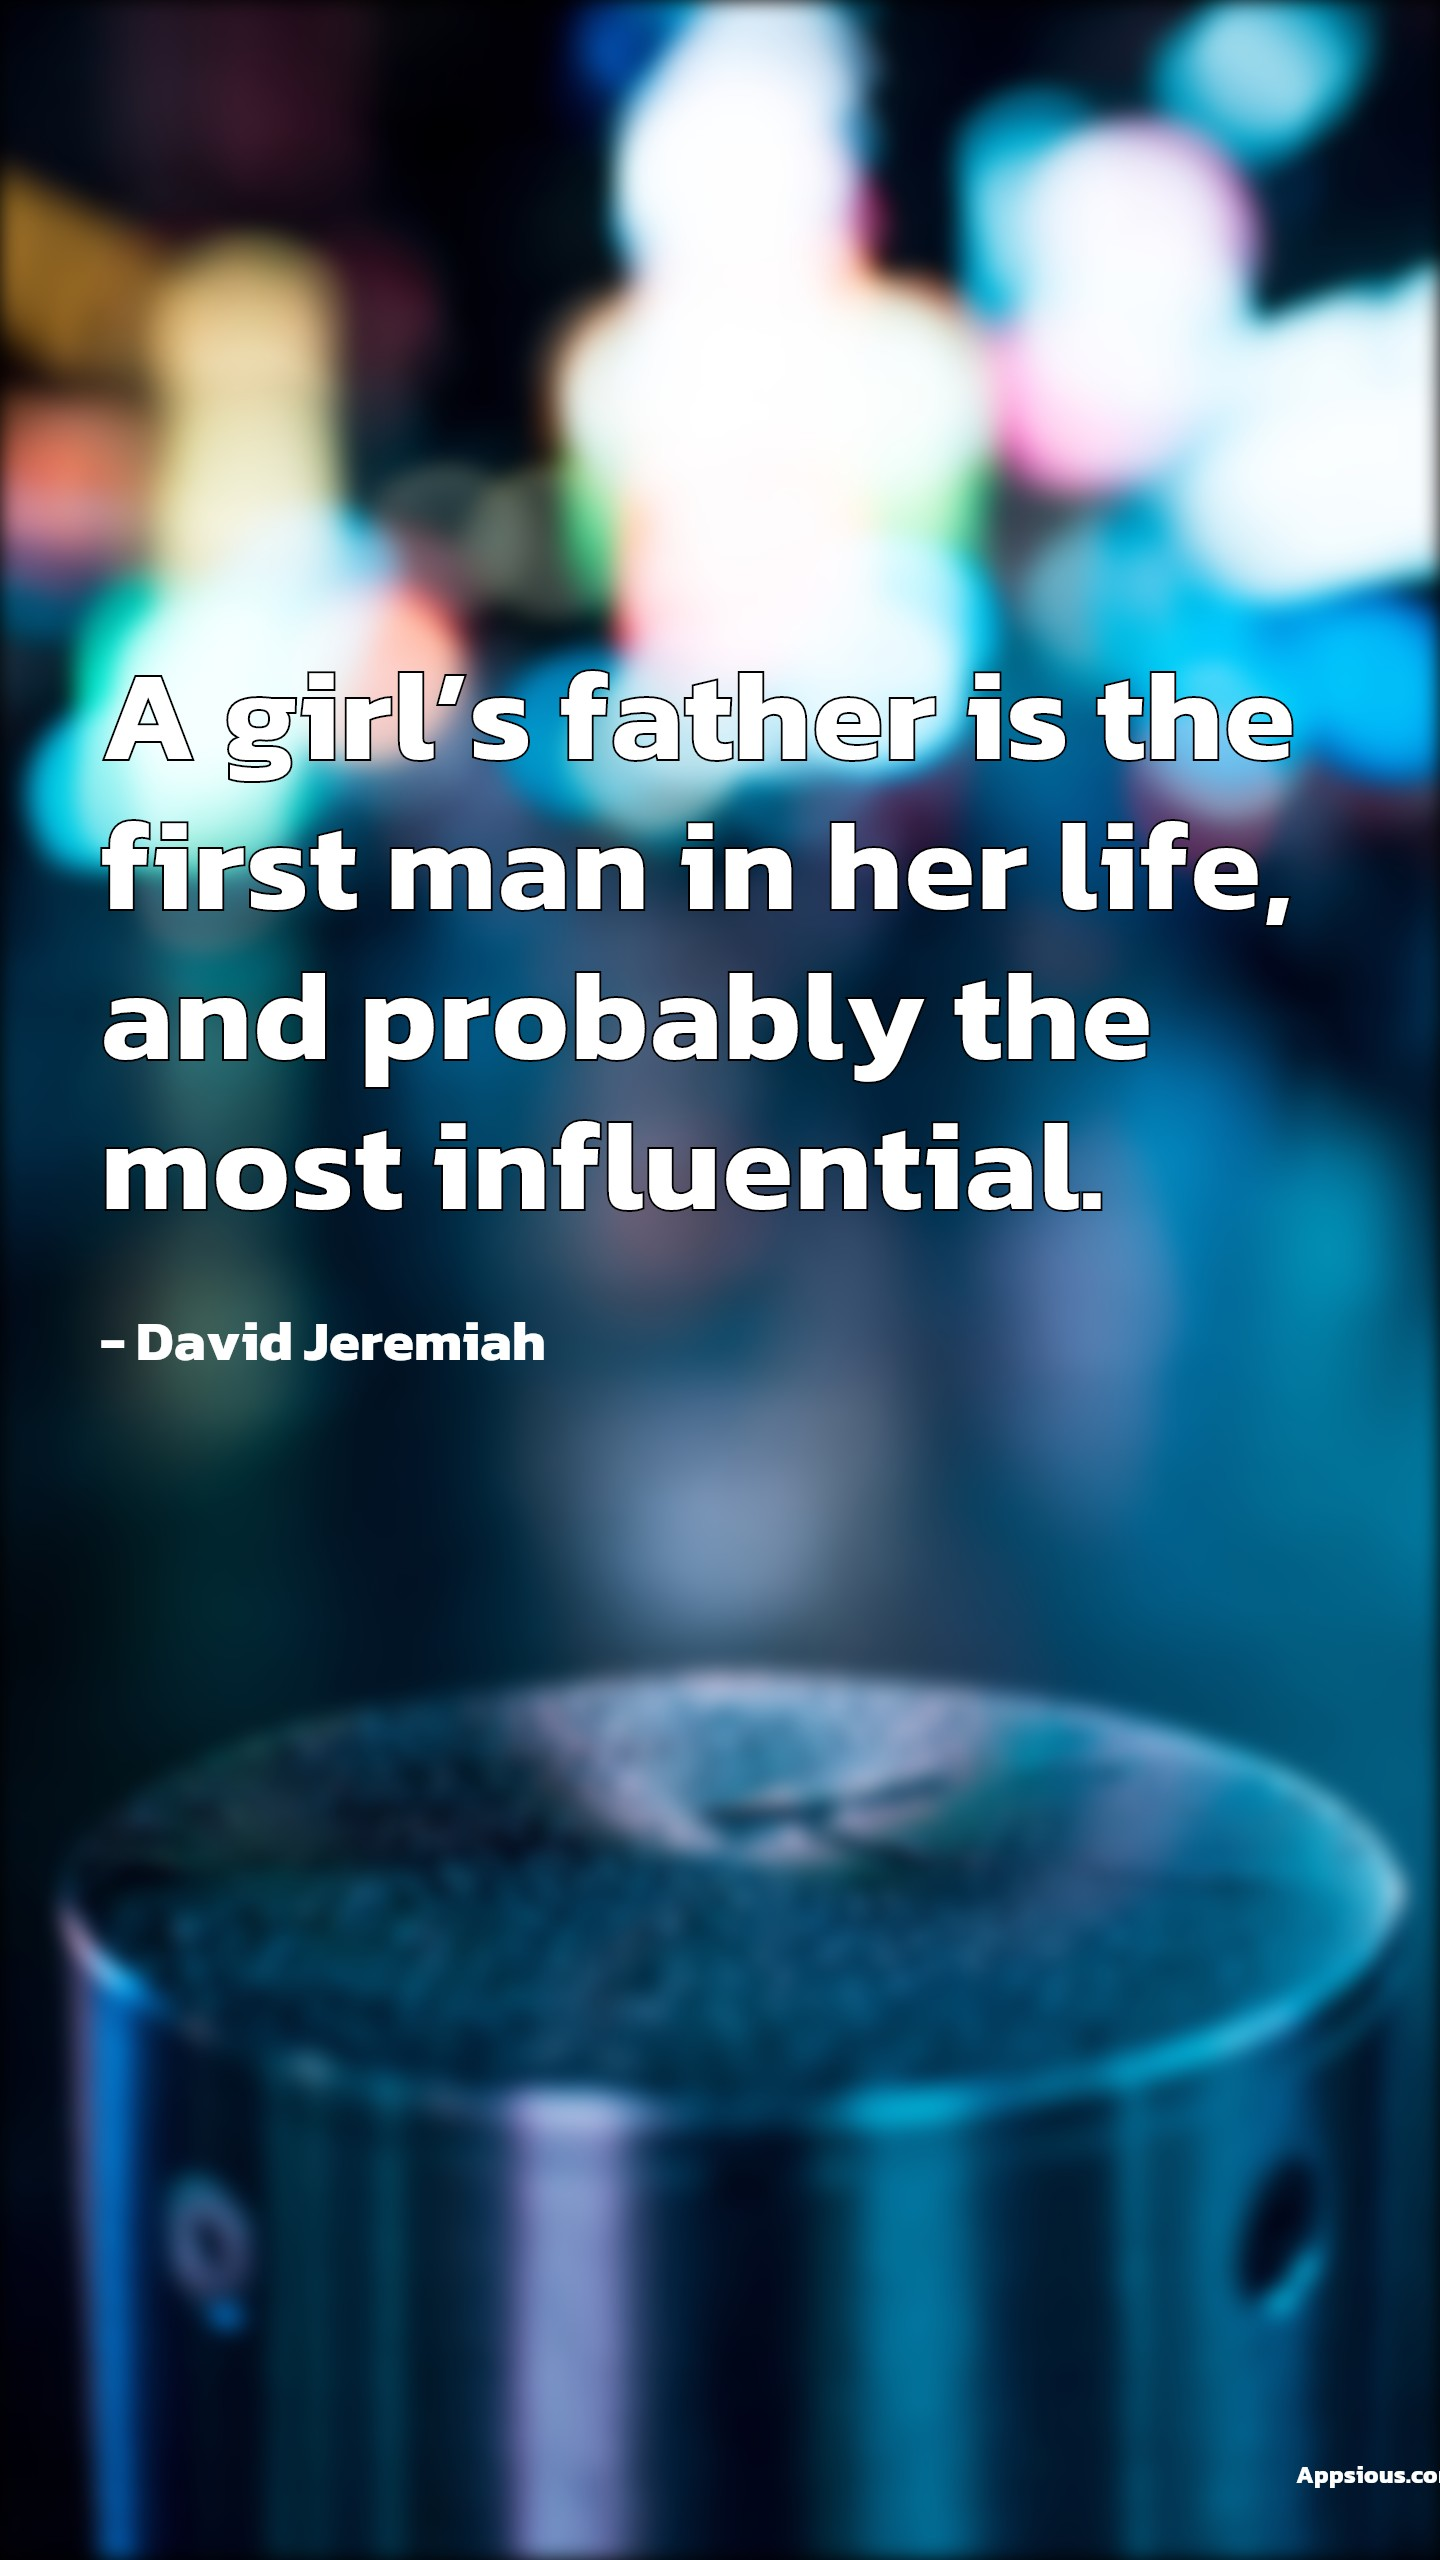 A girl's father is the first man in her life, and probably the most influential.